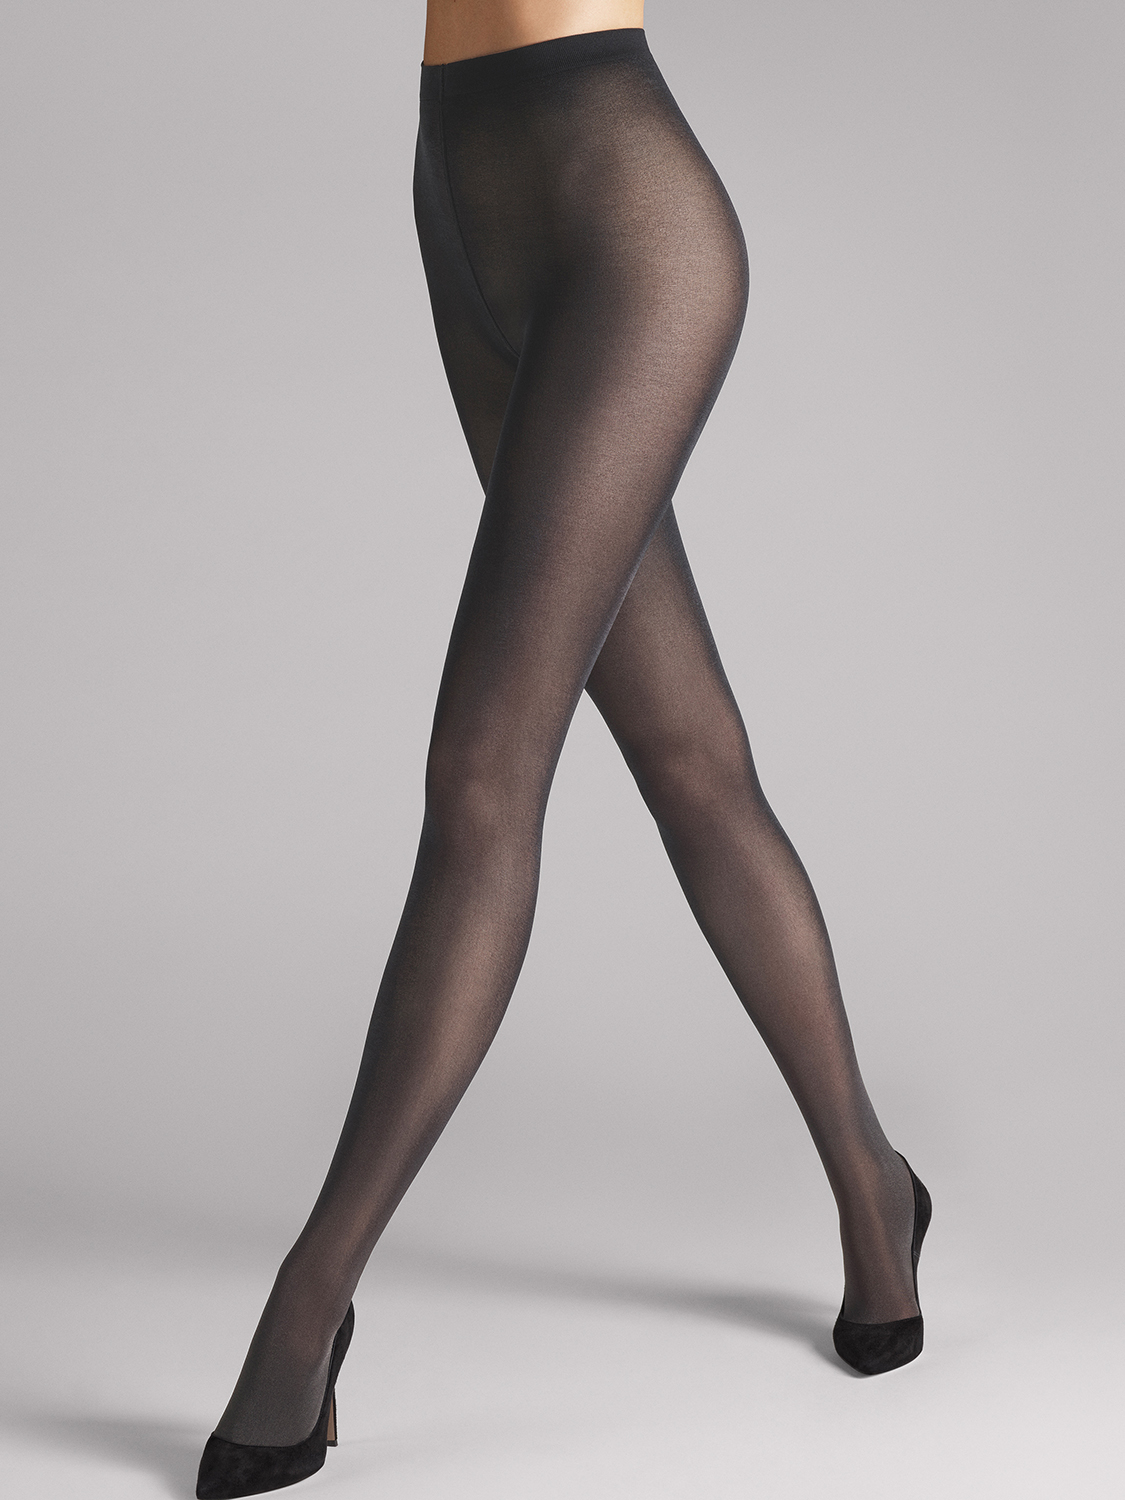 Колготы satin opaque 50 tights фото